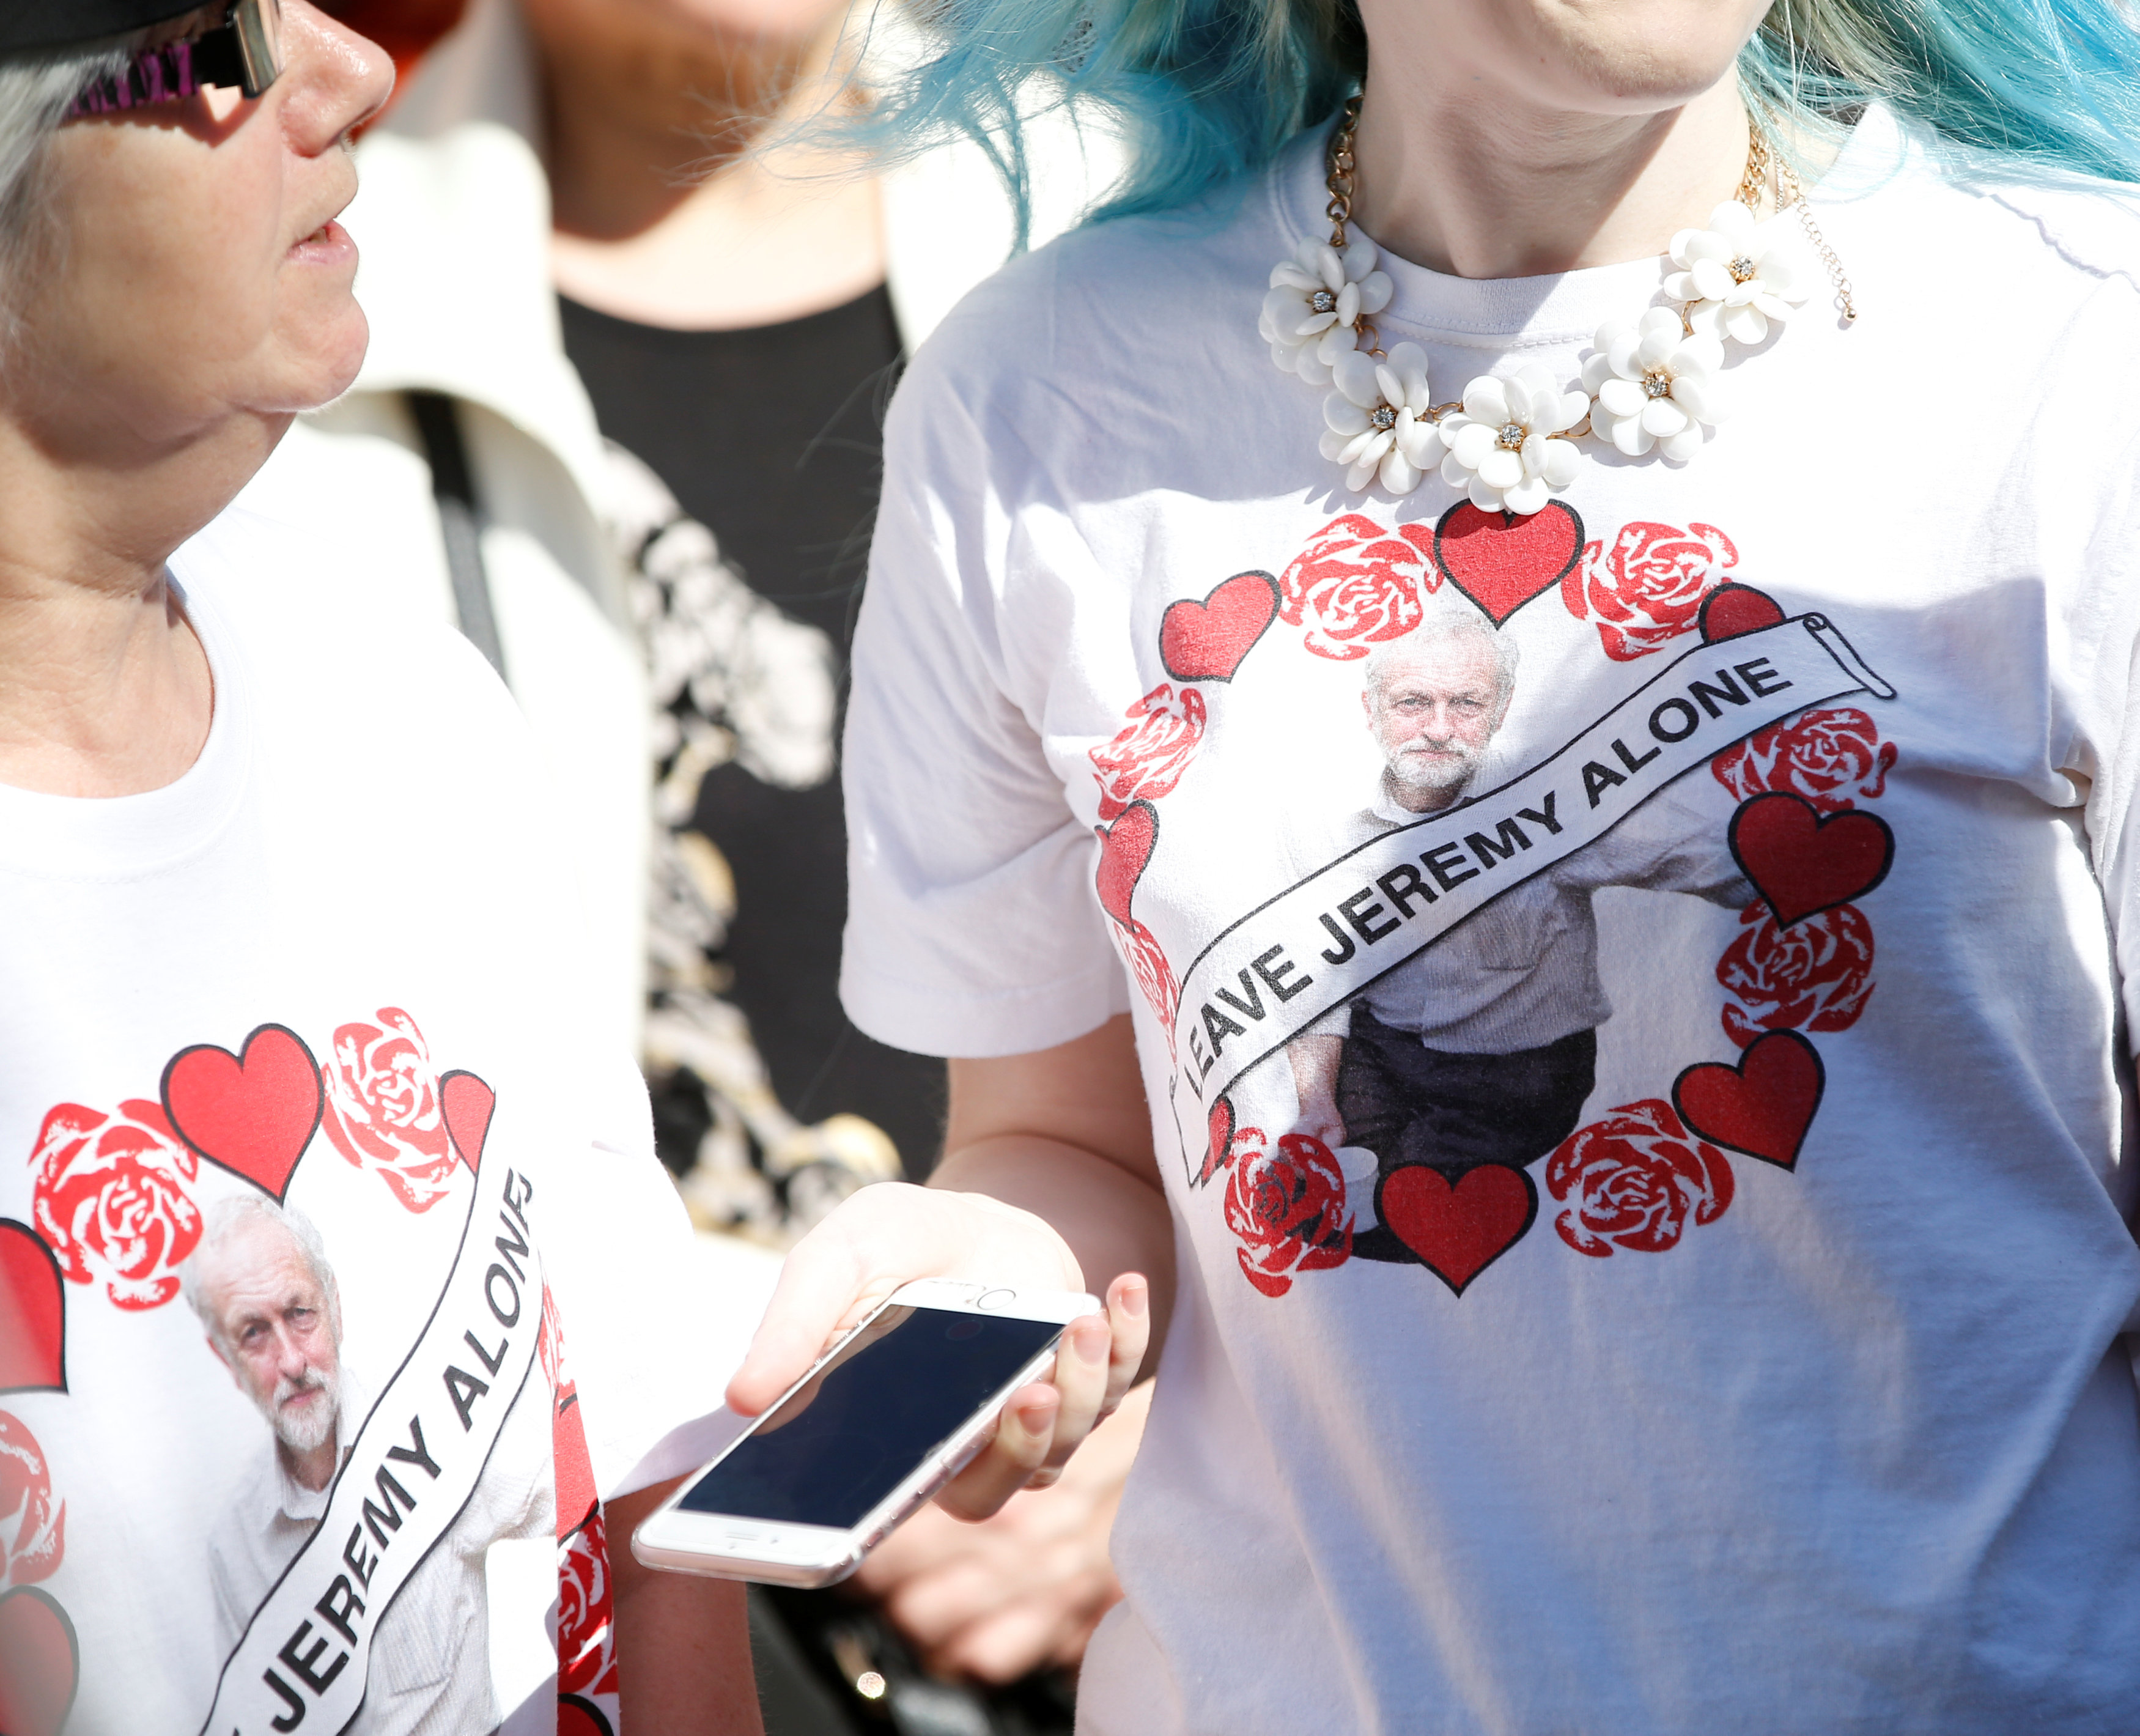 Women wear Jeremy Corbyn t-shirts as Jeremy Corbyn, the leader of Britain's opposition Labour Party, arrives to speak to the public during an election campaign visit in the centre of Crewe April 22, 2017. REUTERS/Andrew Yates